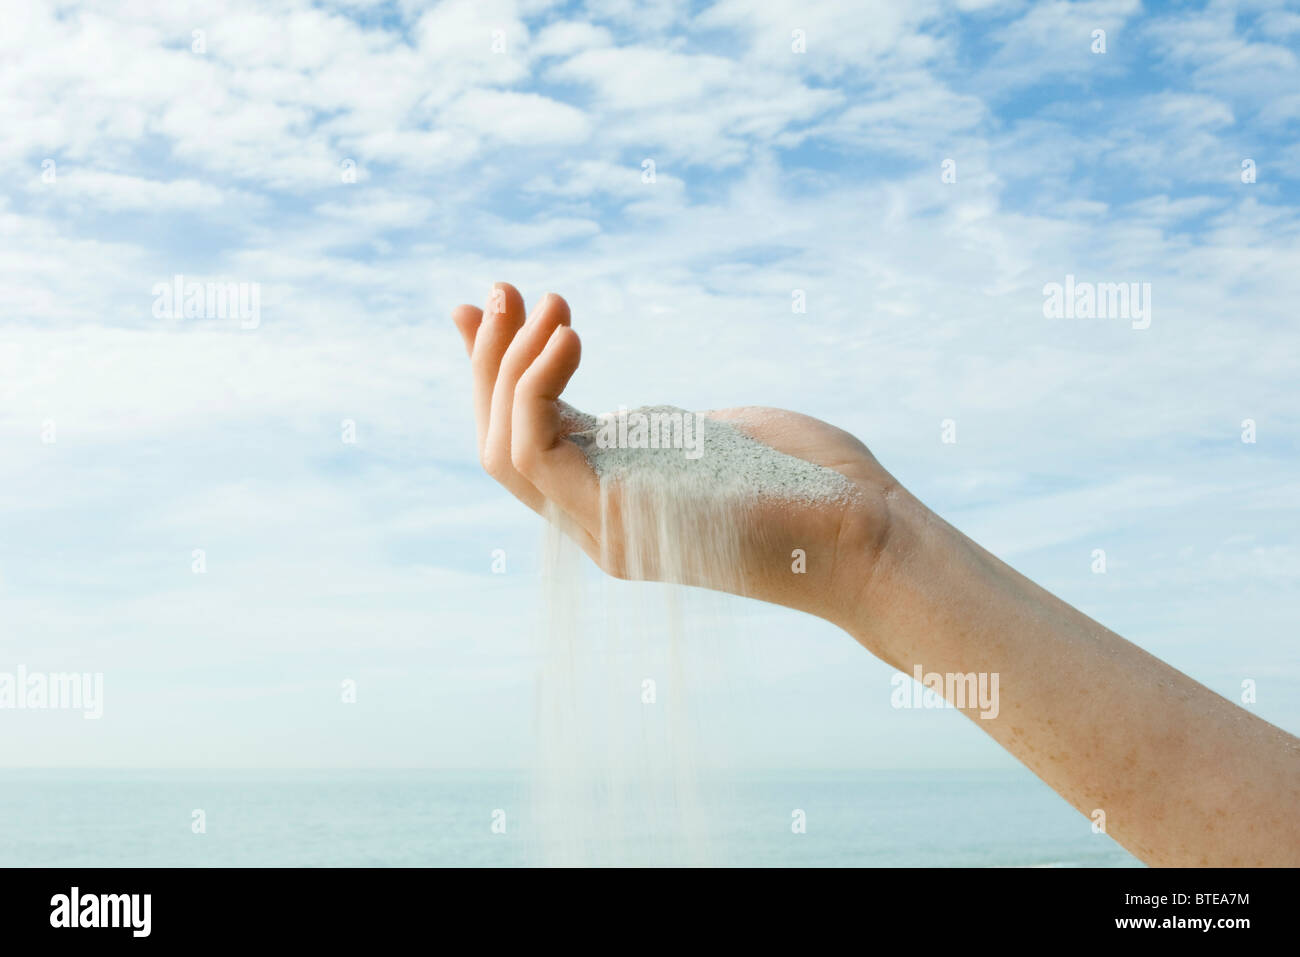 Sand spilling from cupped hand Stock Photo